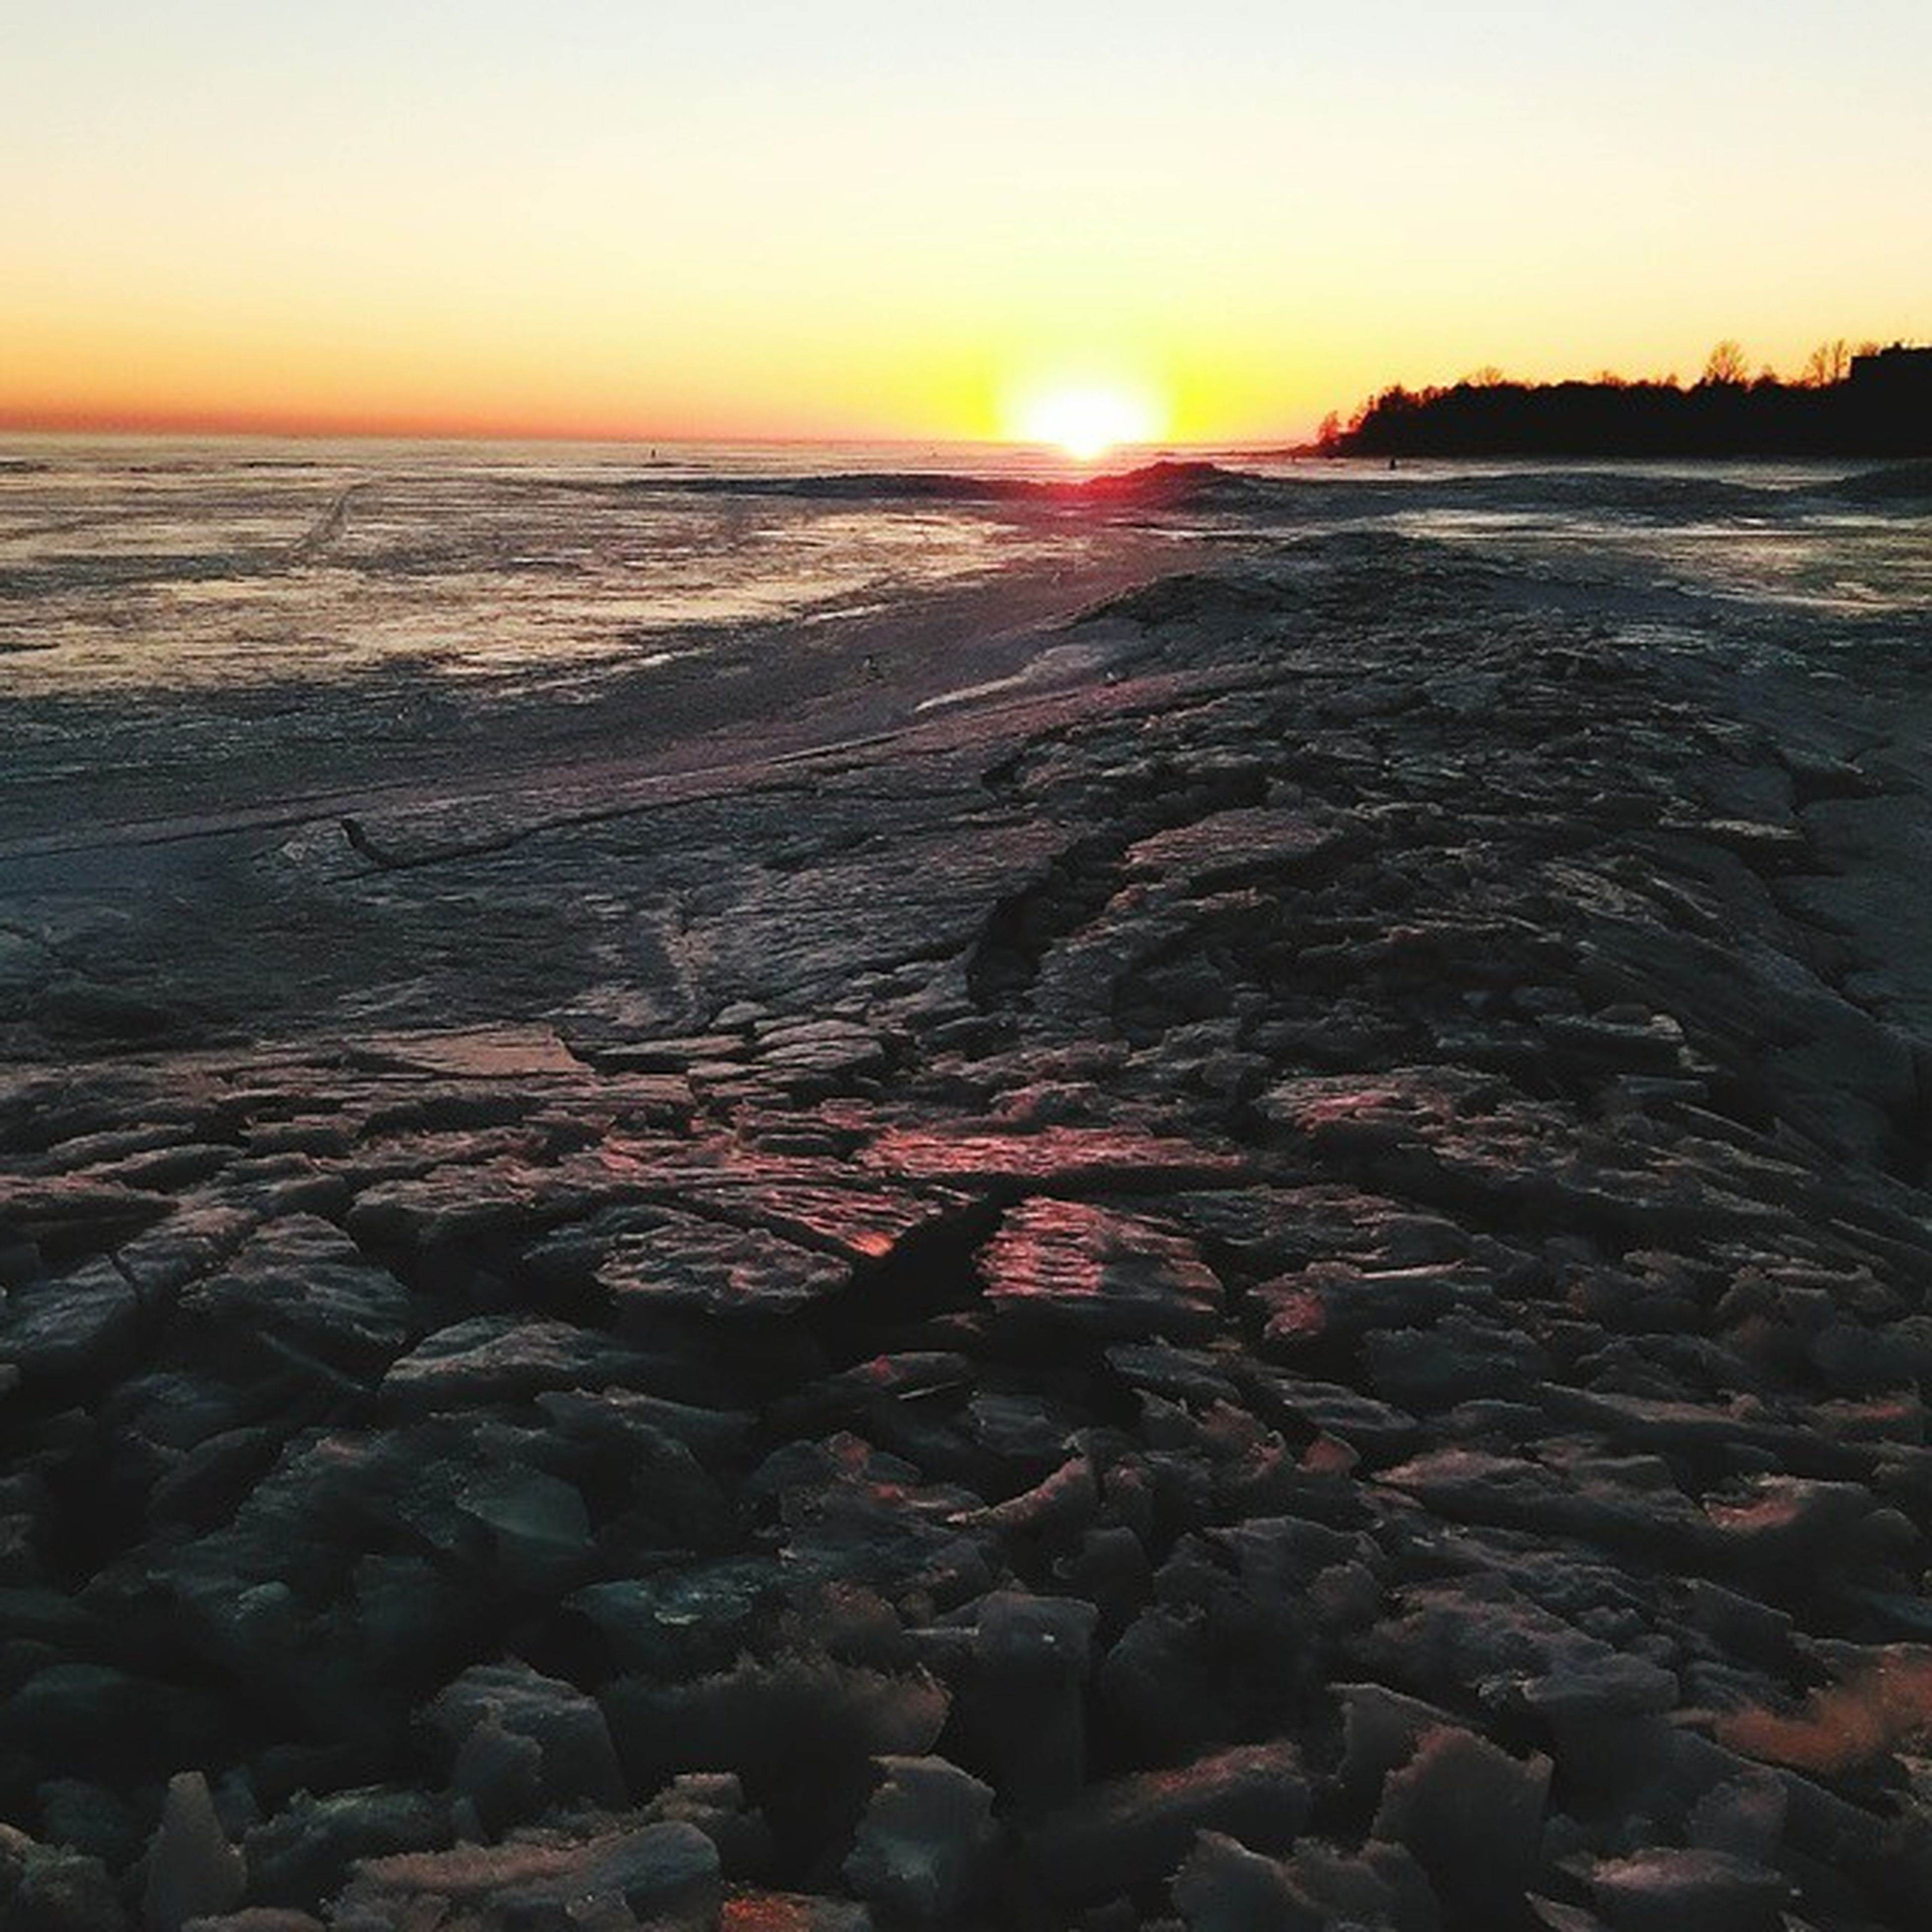 sunset, sun, water, sea, scenics, tranquil scene, tranquility, beach, beauty in nature, orange color, nature, horizon over water, sky, shore, idyllic, sunlight, rock - object, reflection, stone - object, outdoors